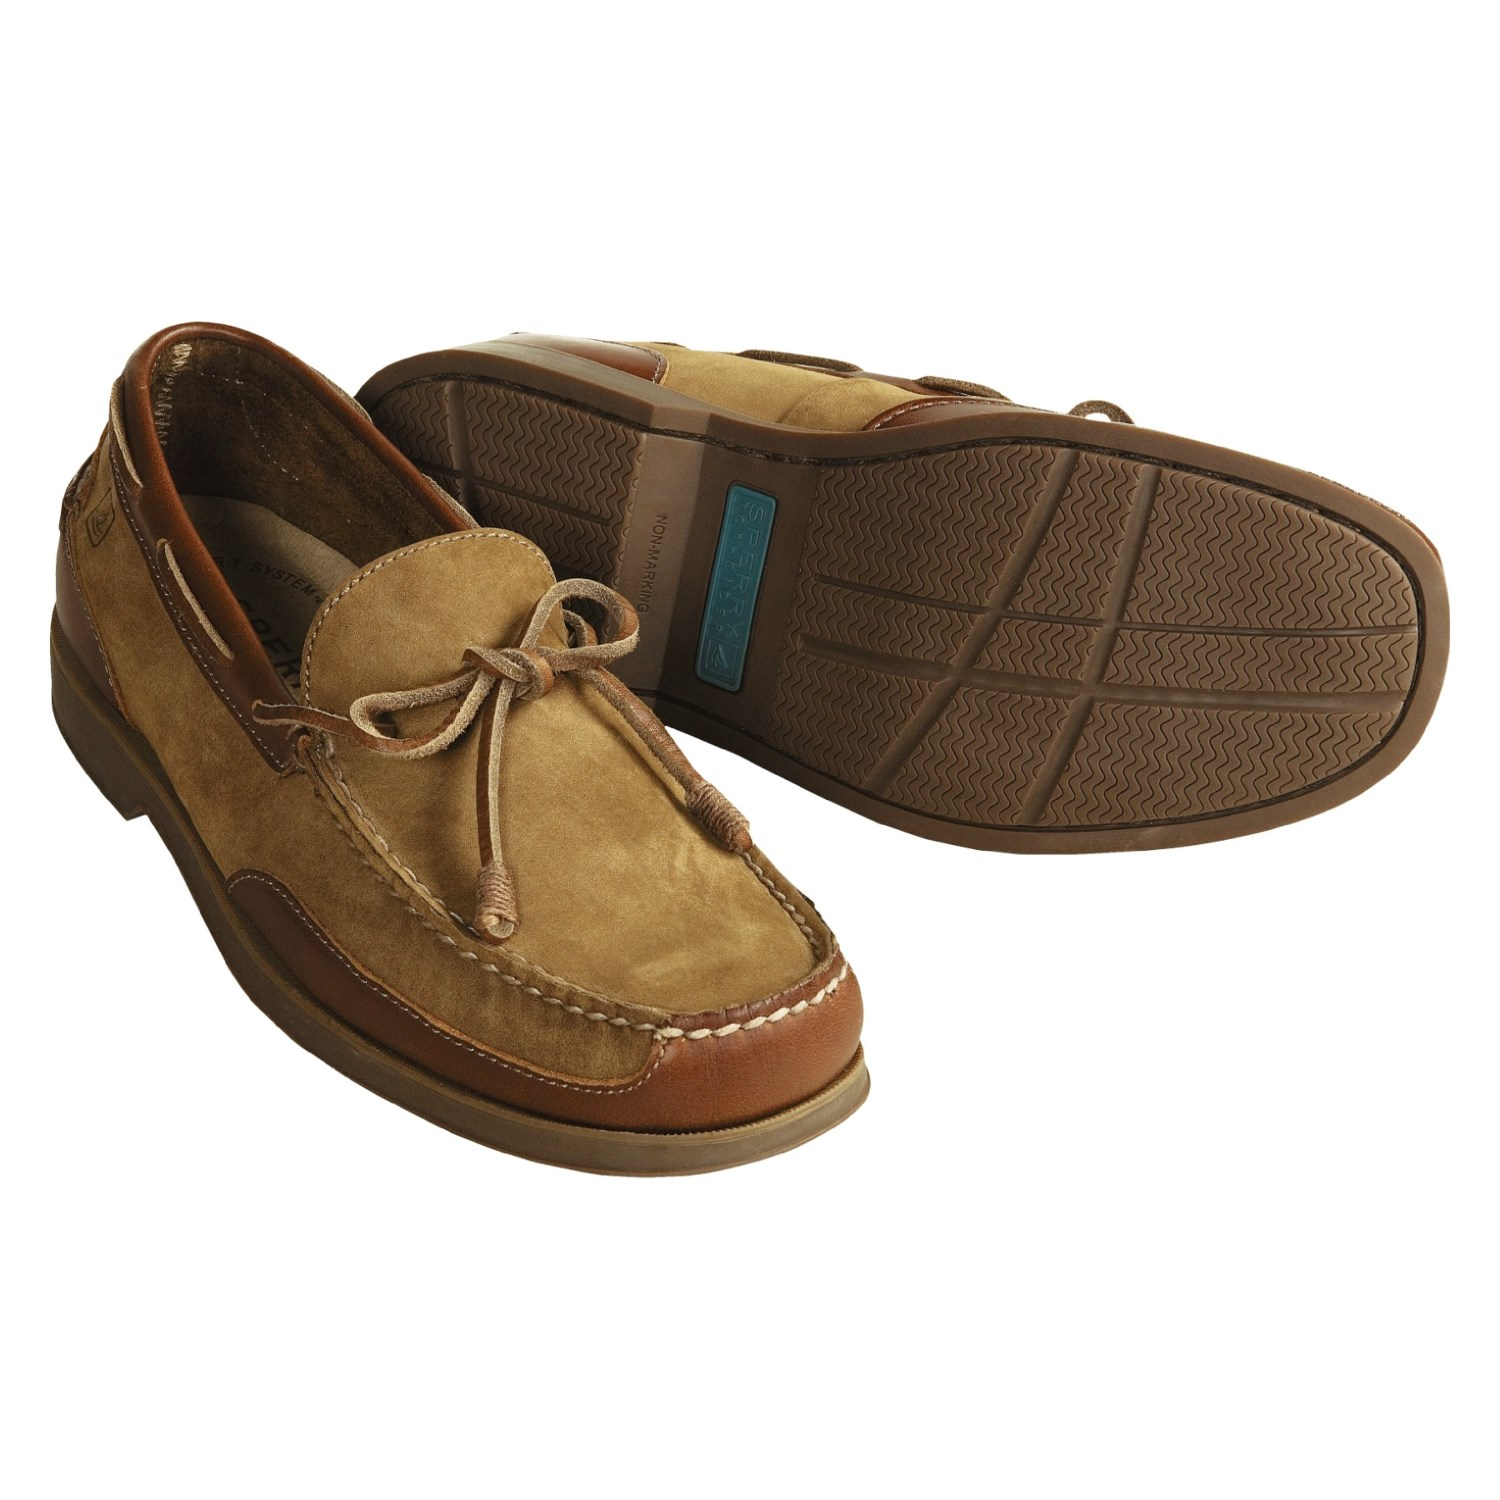 These men's Sperry shoes look great with jeans, and are ideal for everyday wear for men of all ages. The slippers balance the comfort of wearing sneakers, the look of a more sophisticated shoe, and the reliability of a popular brand like Sperry.